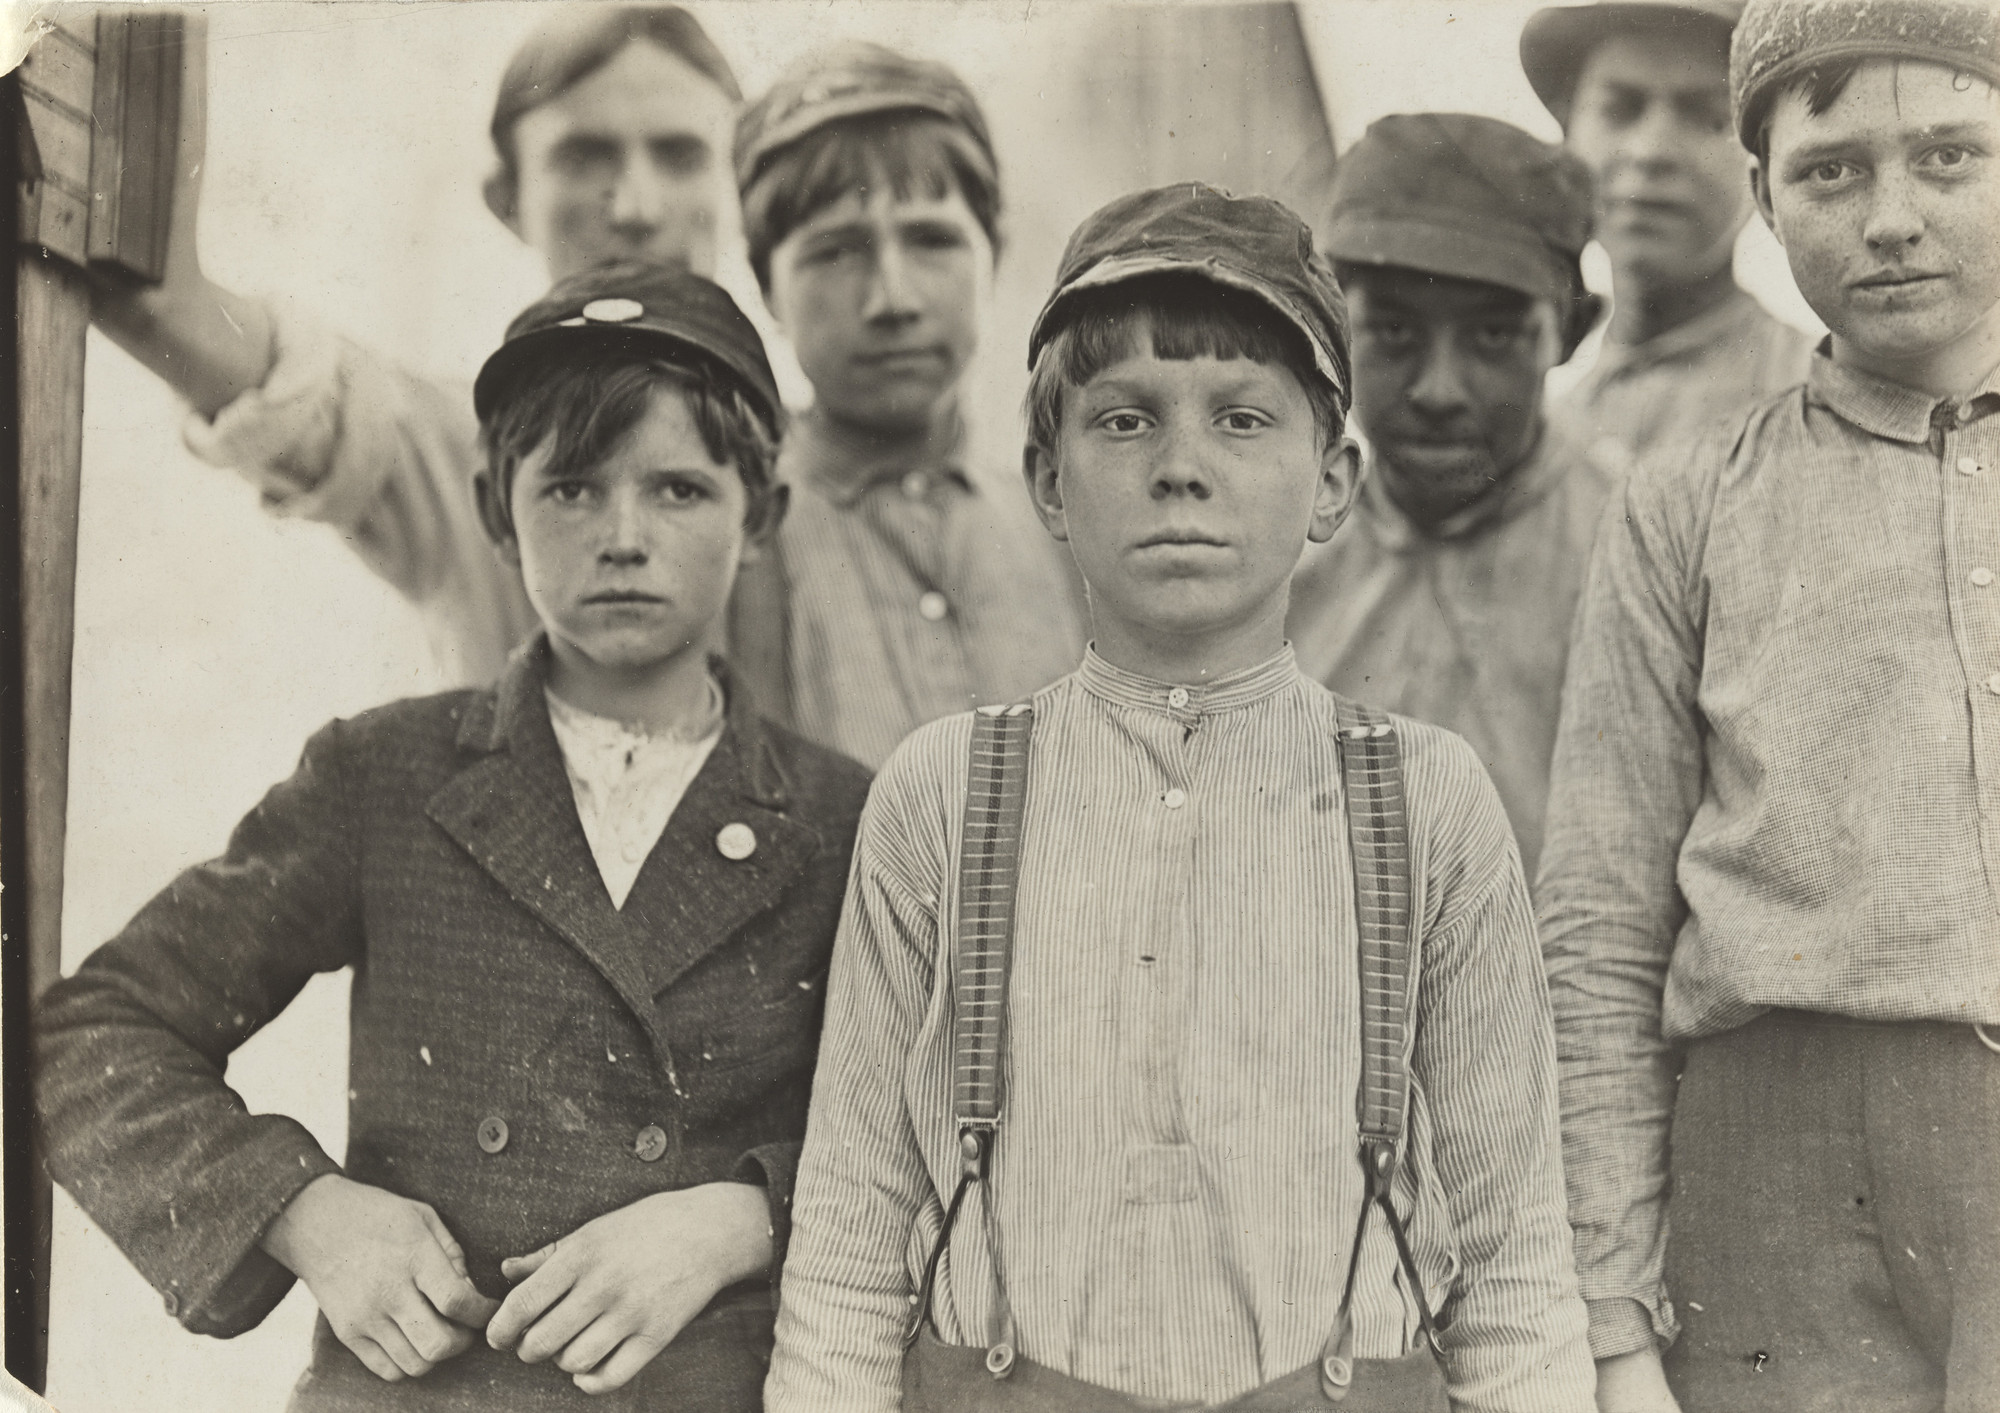 Lewis W. Hine. Doffers, Willingham Cotton Mill, Macon, Georgia. January 1909